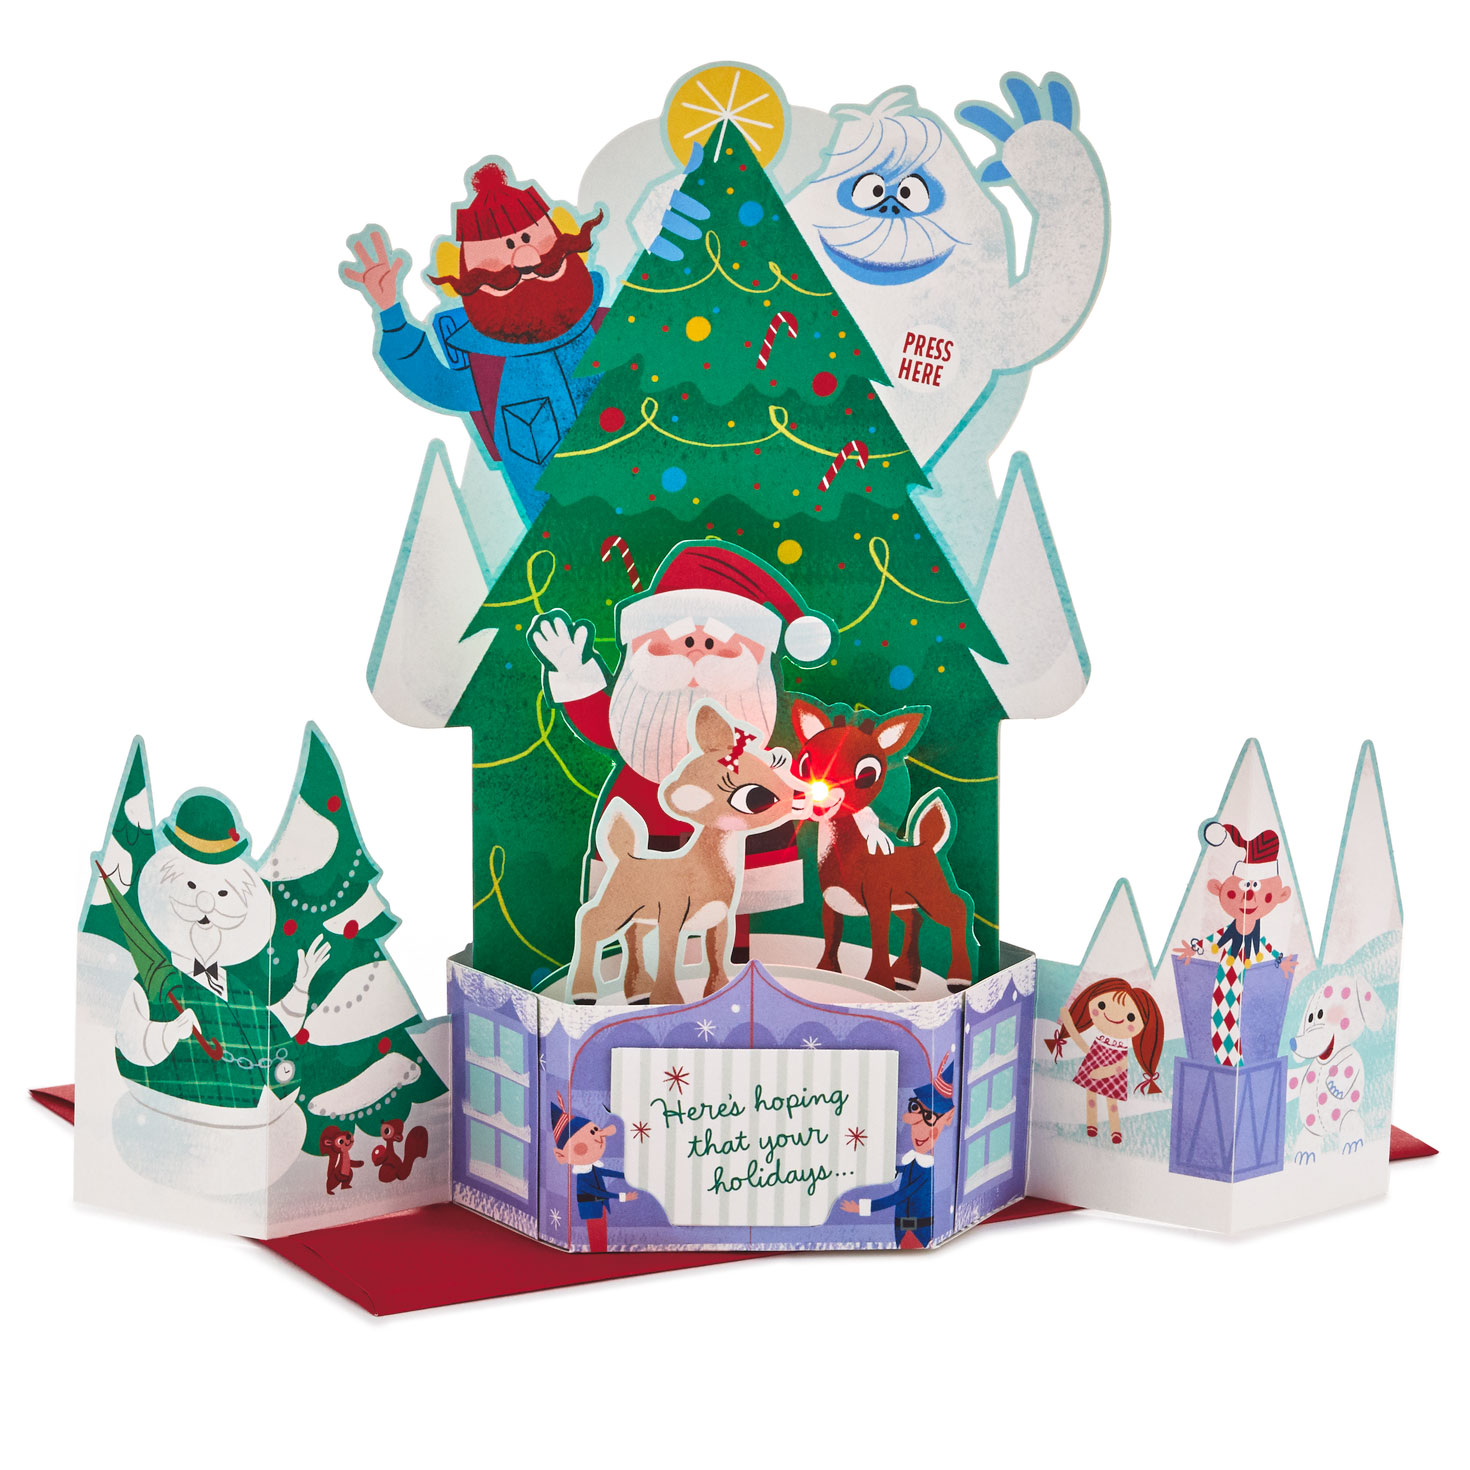 Pop Up Christmas Cards.Rudolph The Red Nosed Reindeer Musical 3d Pop Up Christmas Card With Light